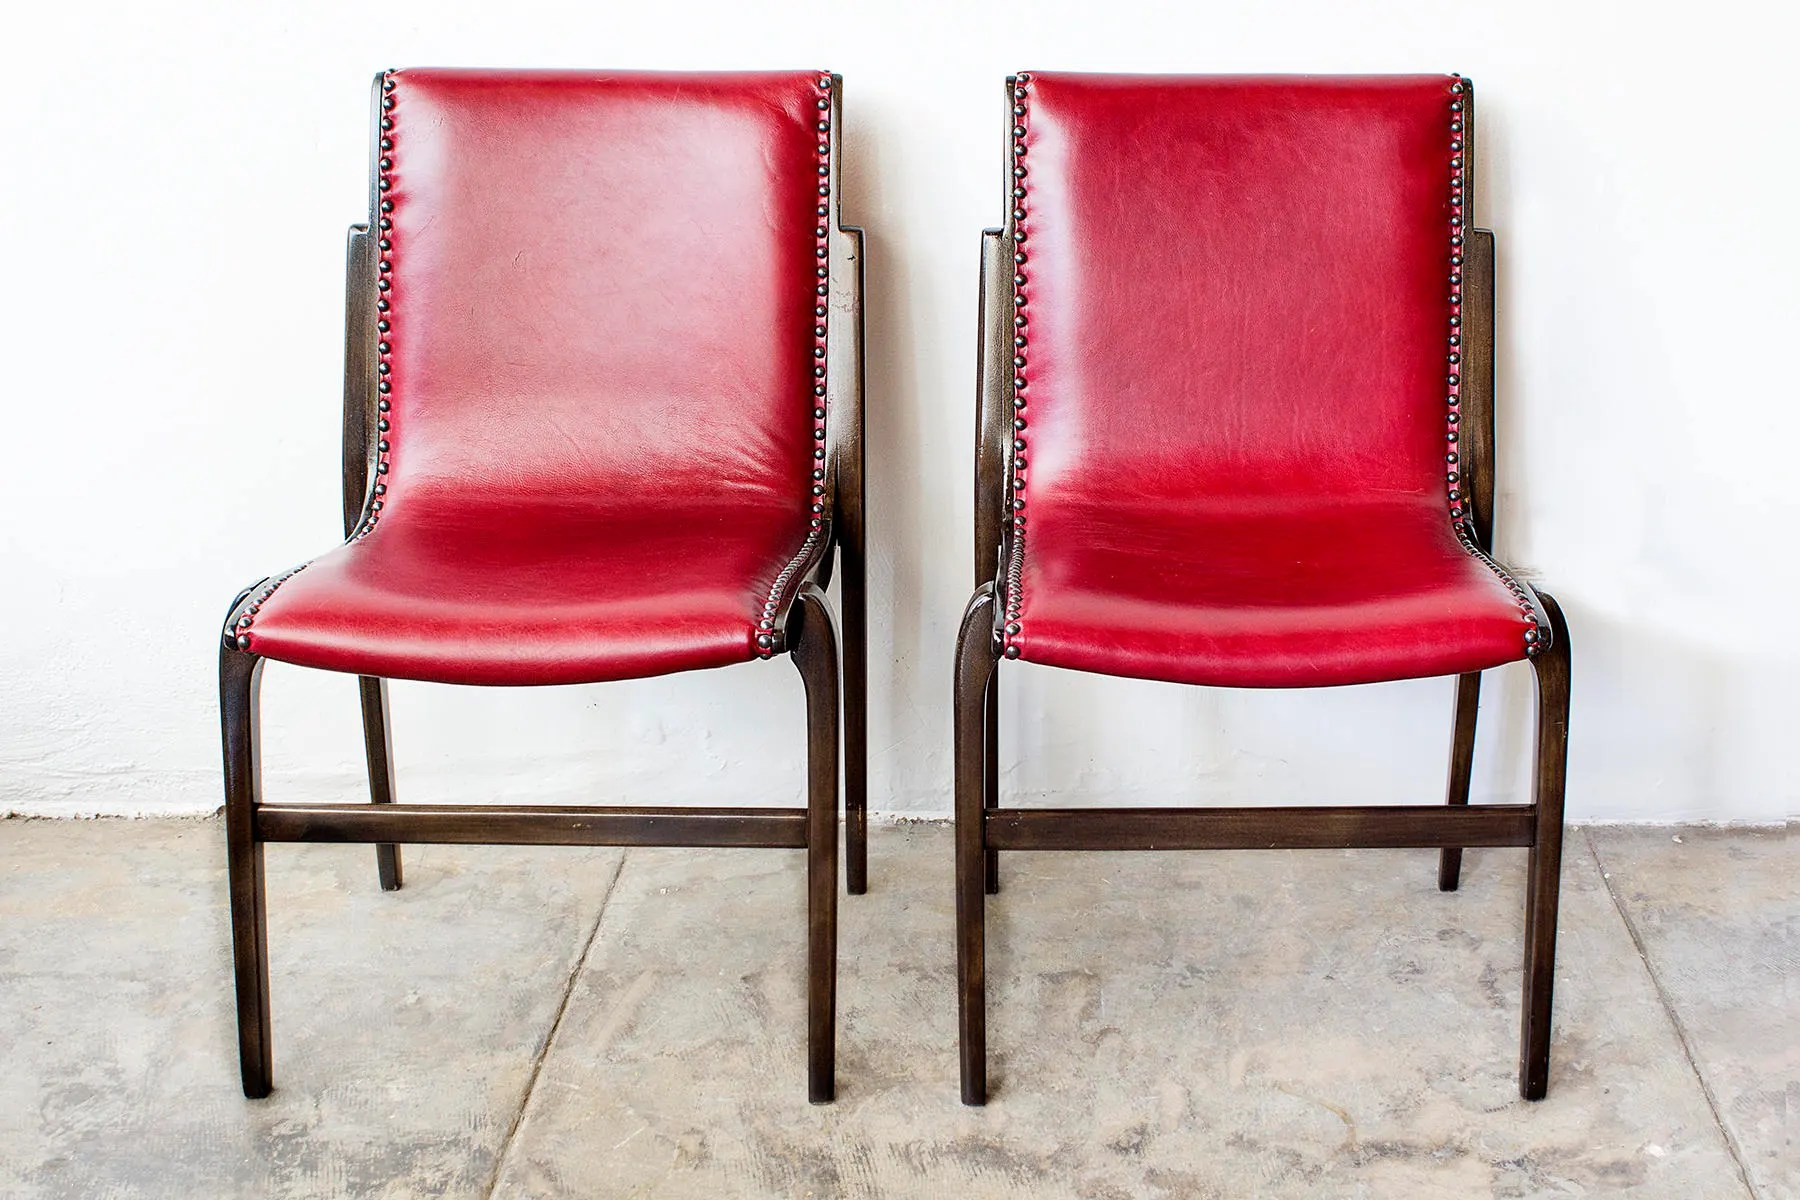 Swedish Mid Century Furniture Pair Of Bentwood Swedish Mid Century Modern Side Chairs By Kungsor Stolen Refinished In Cherry Red Leather